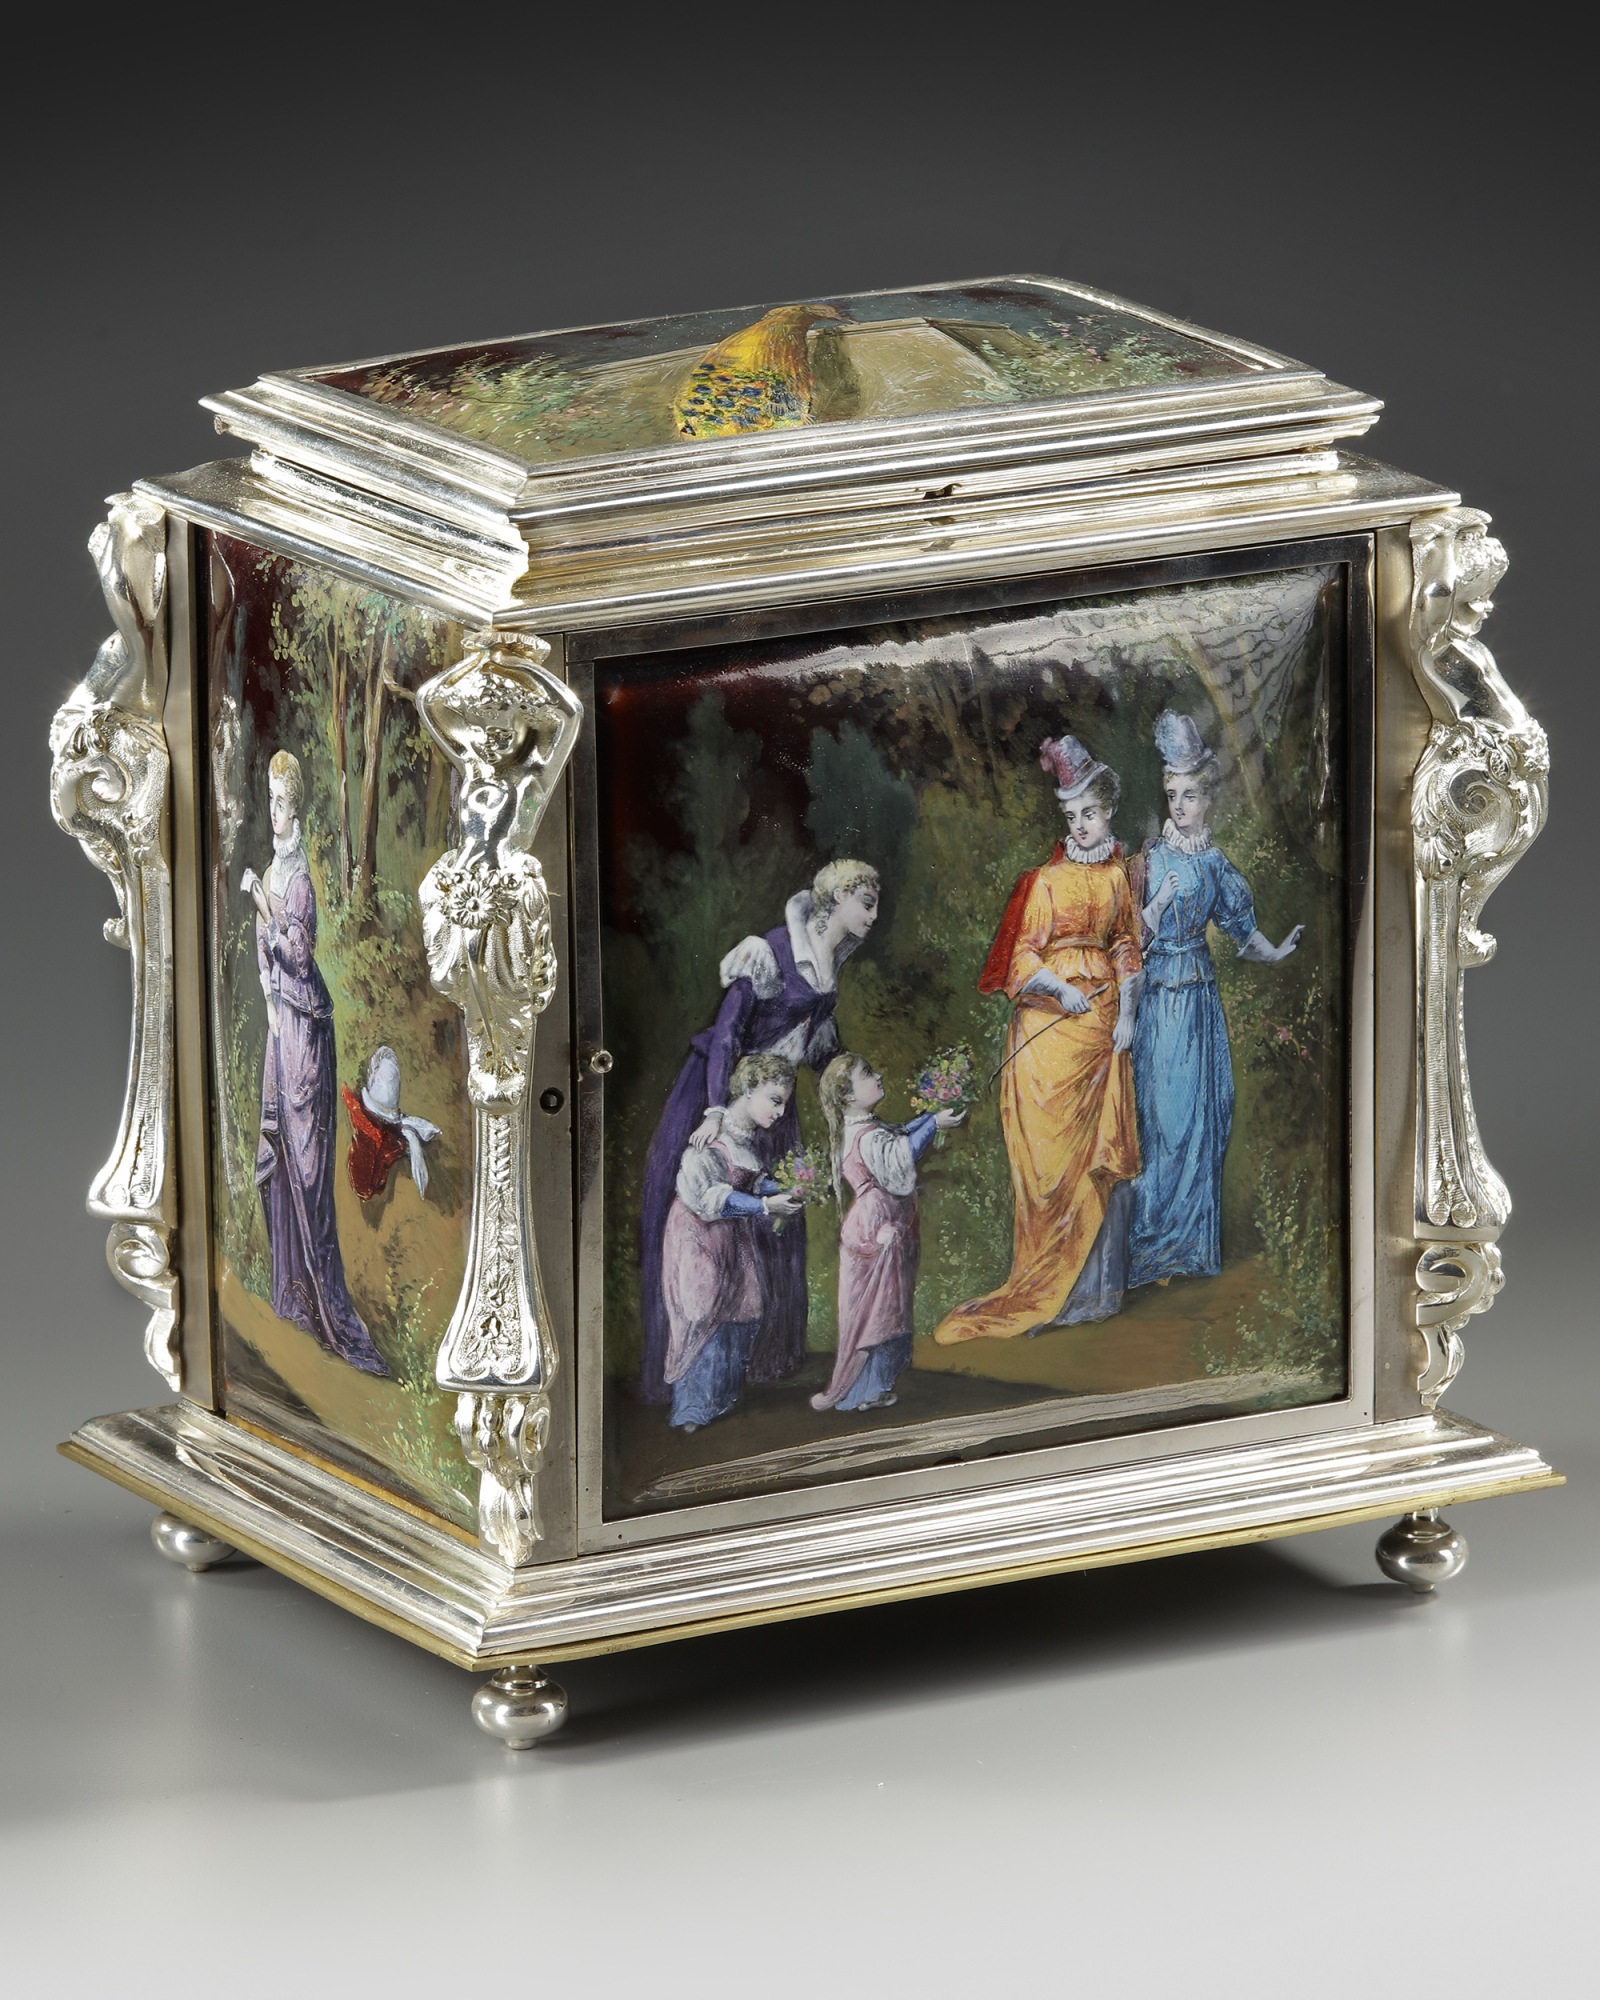 A JEWELRY BOX, FRANCE, LATE 19TH CENTURY